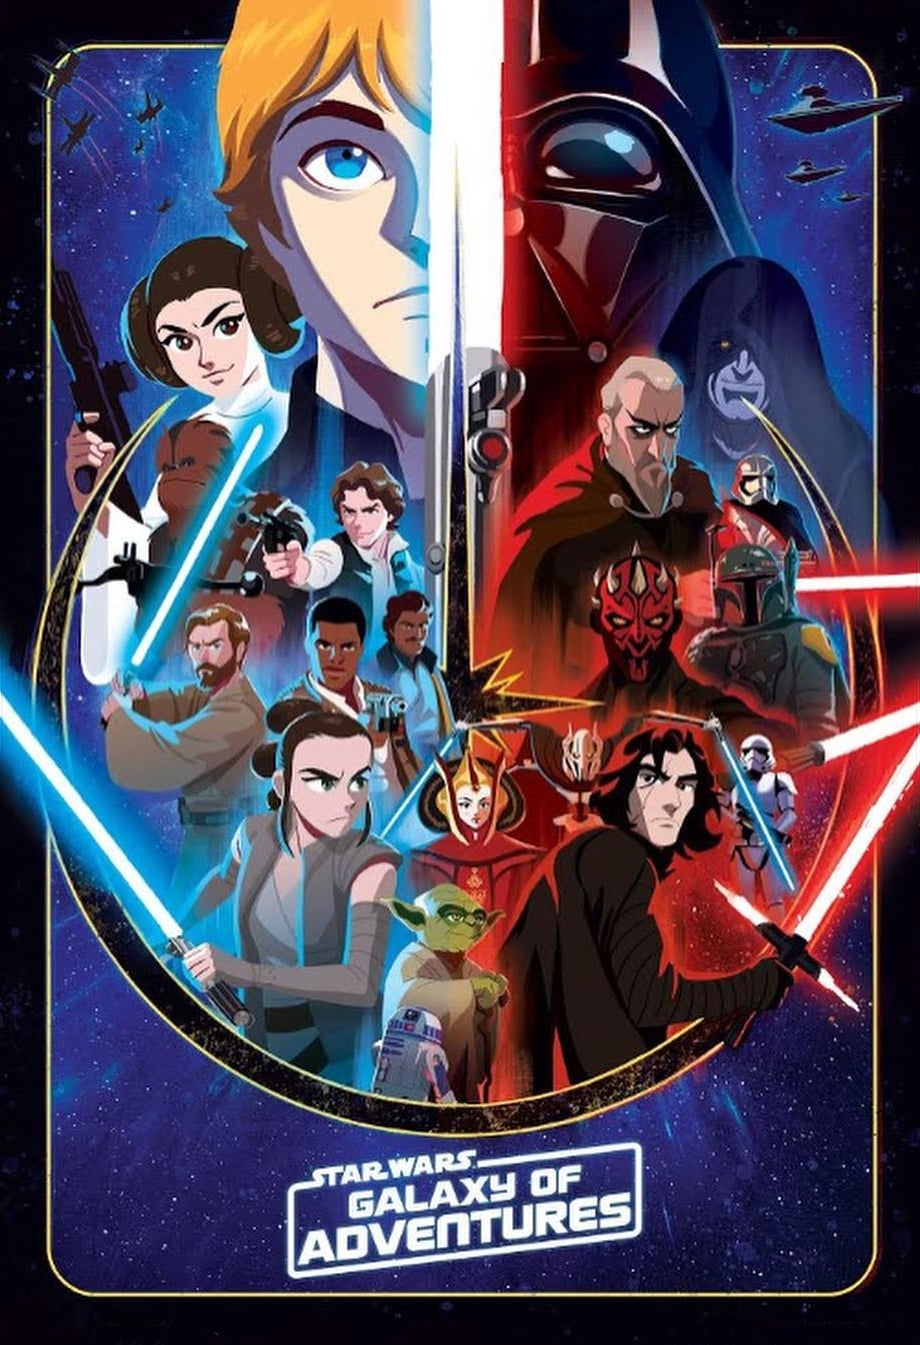 Star Wars Galaxy of Adventures (2018)